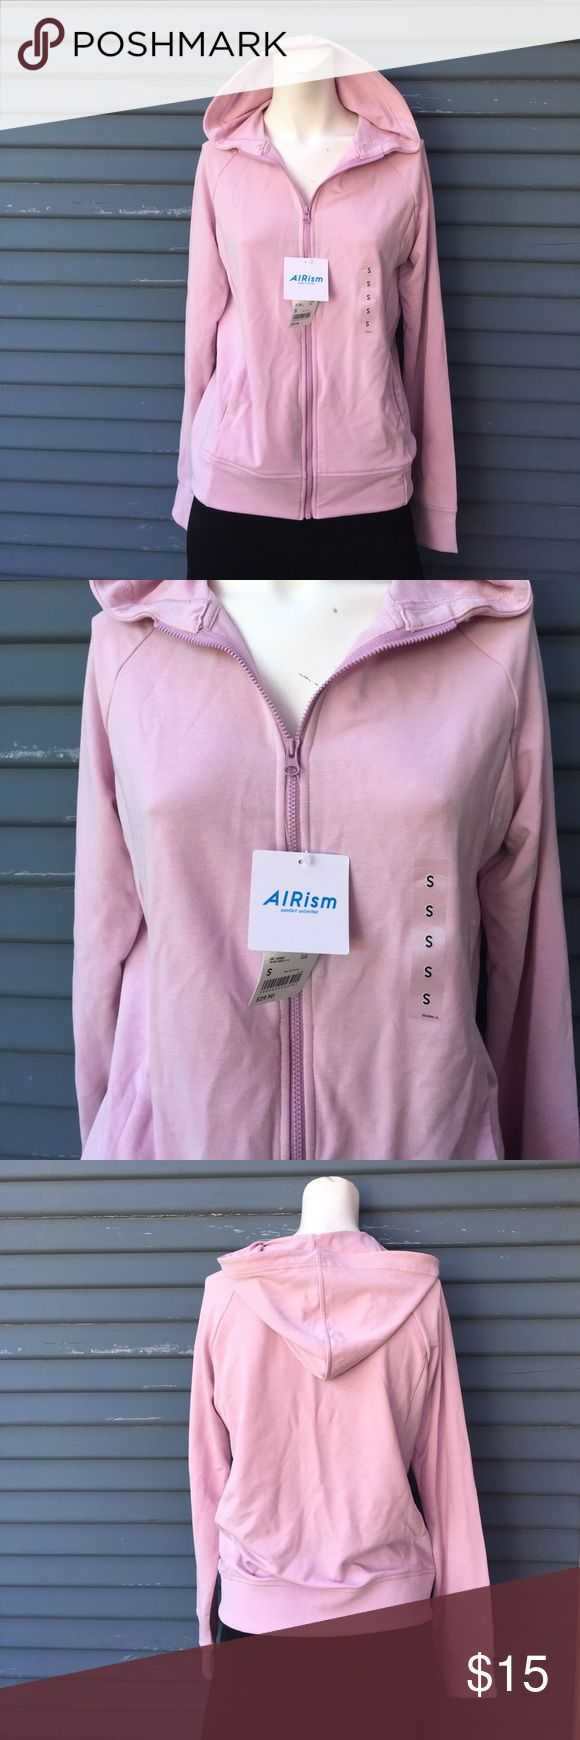 NWT- BRAND NEW light pink zip up hoodie by Airism NWT- BRAND NEW light pink zip up hoodie by Airism in size small airism Sweaters